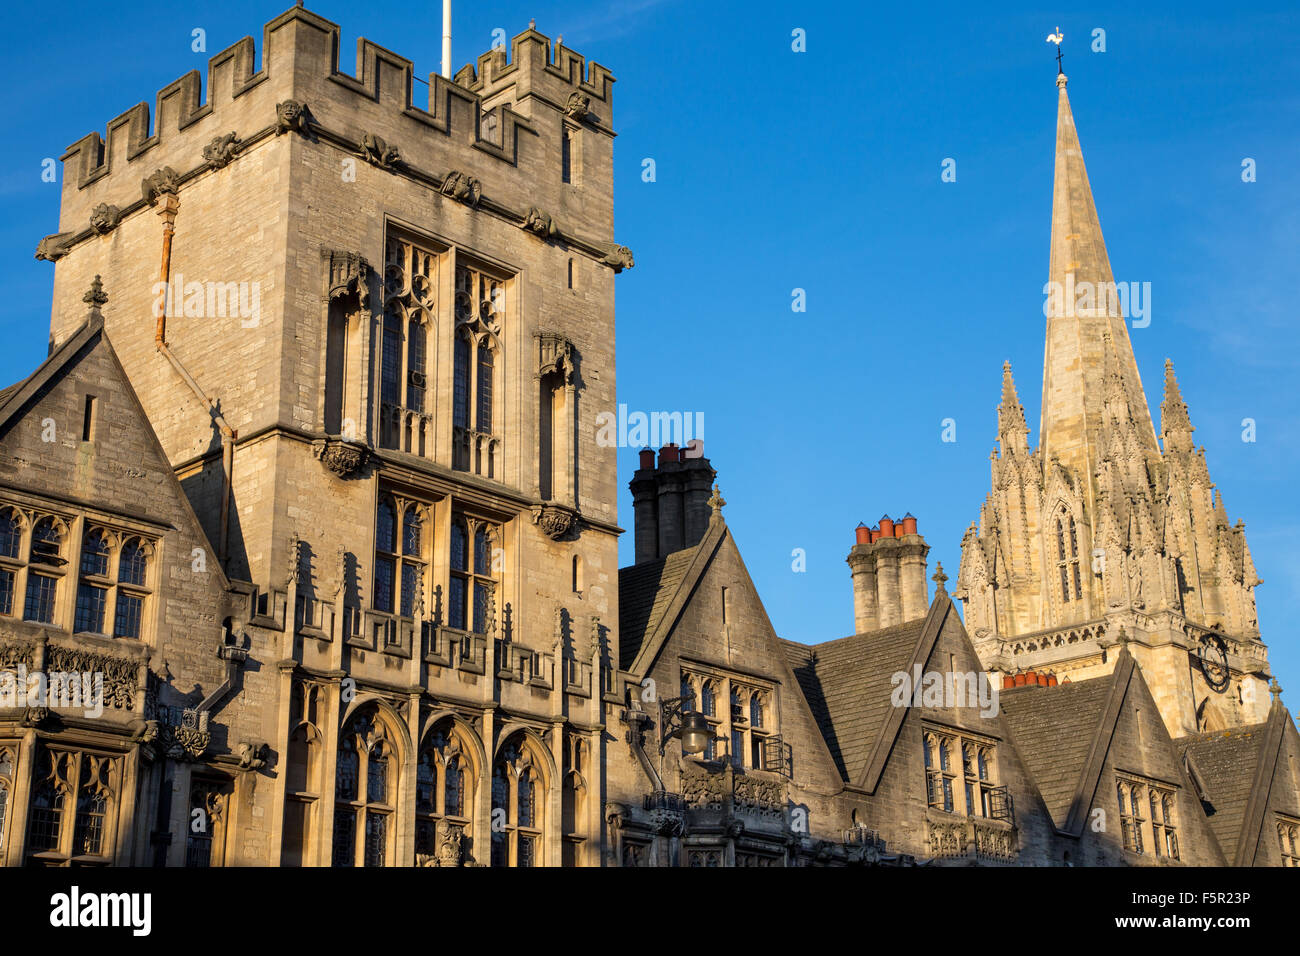 Brasenose College, Oxford University, Oxford, England - Stock Image